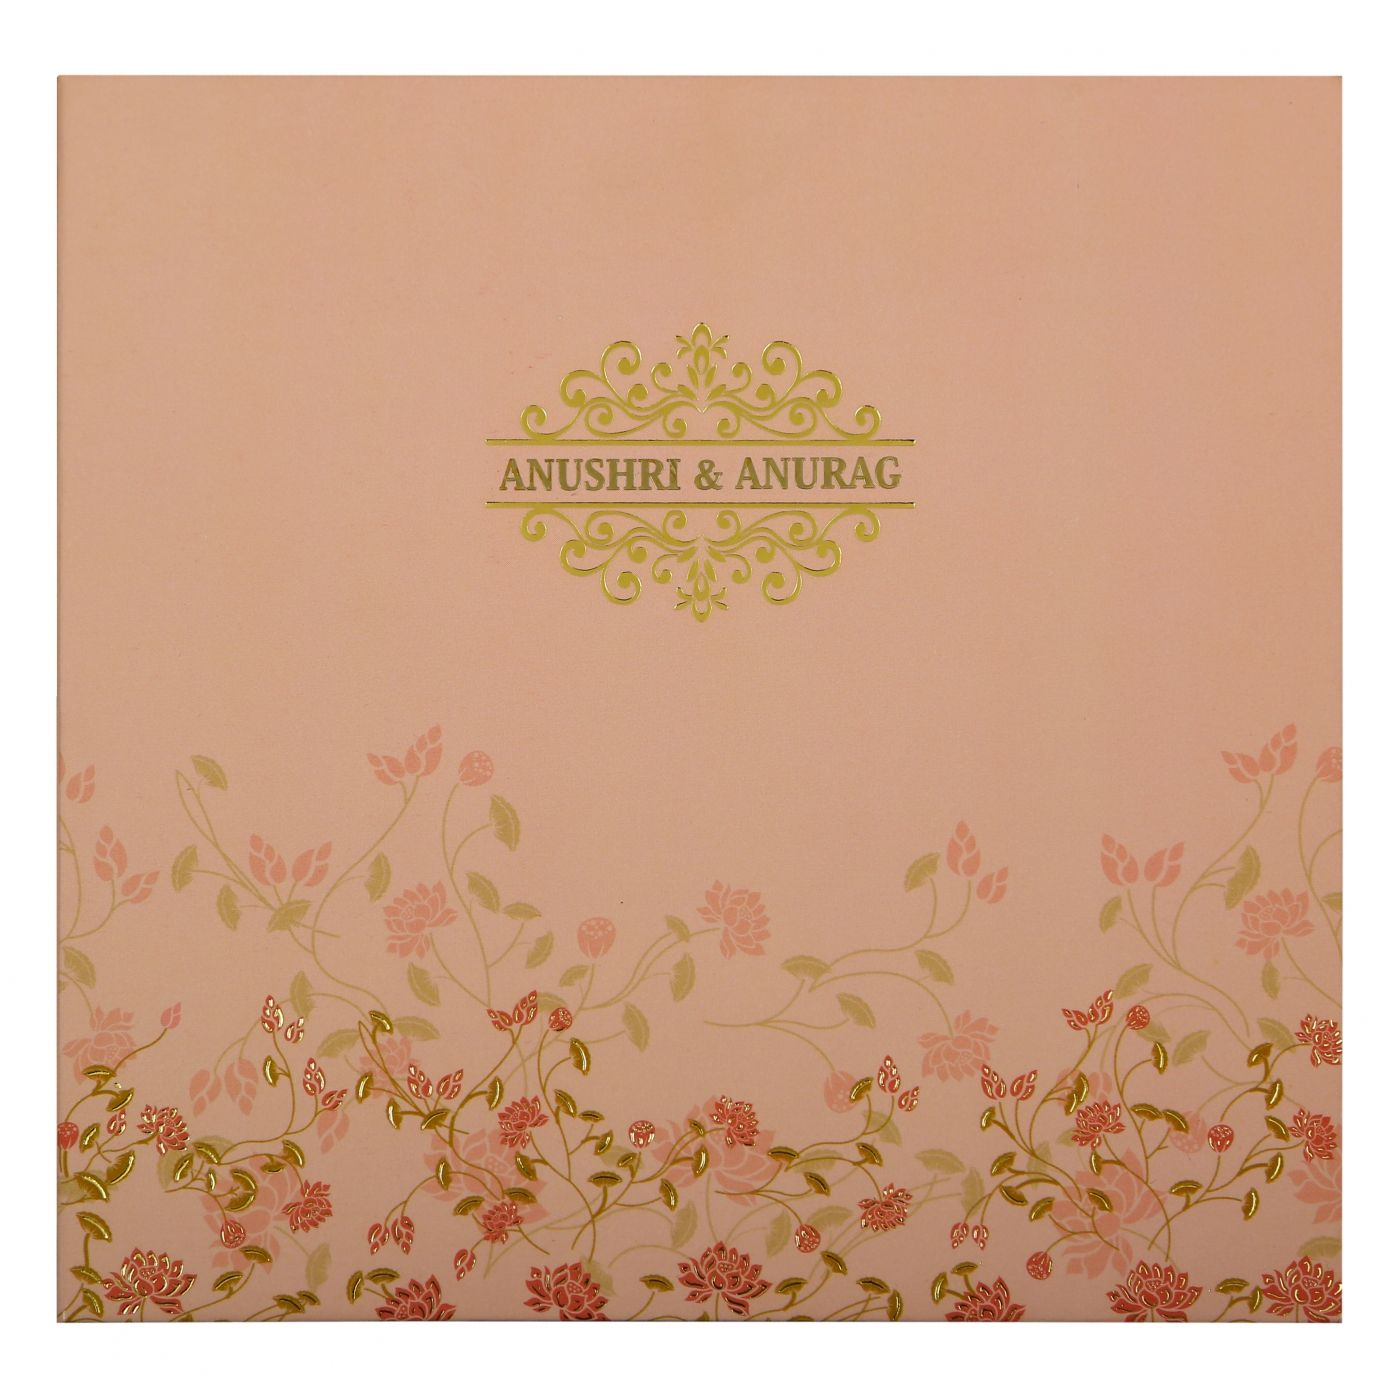 BABY PINK MATTE BOX THEMED - FOIL STAMPED WEDDING INVITATION : CW-1847 - IndianWeddingCards